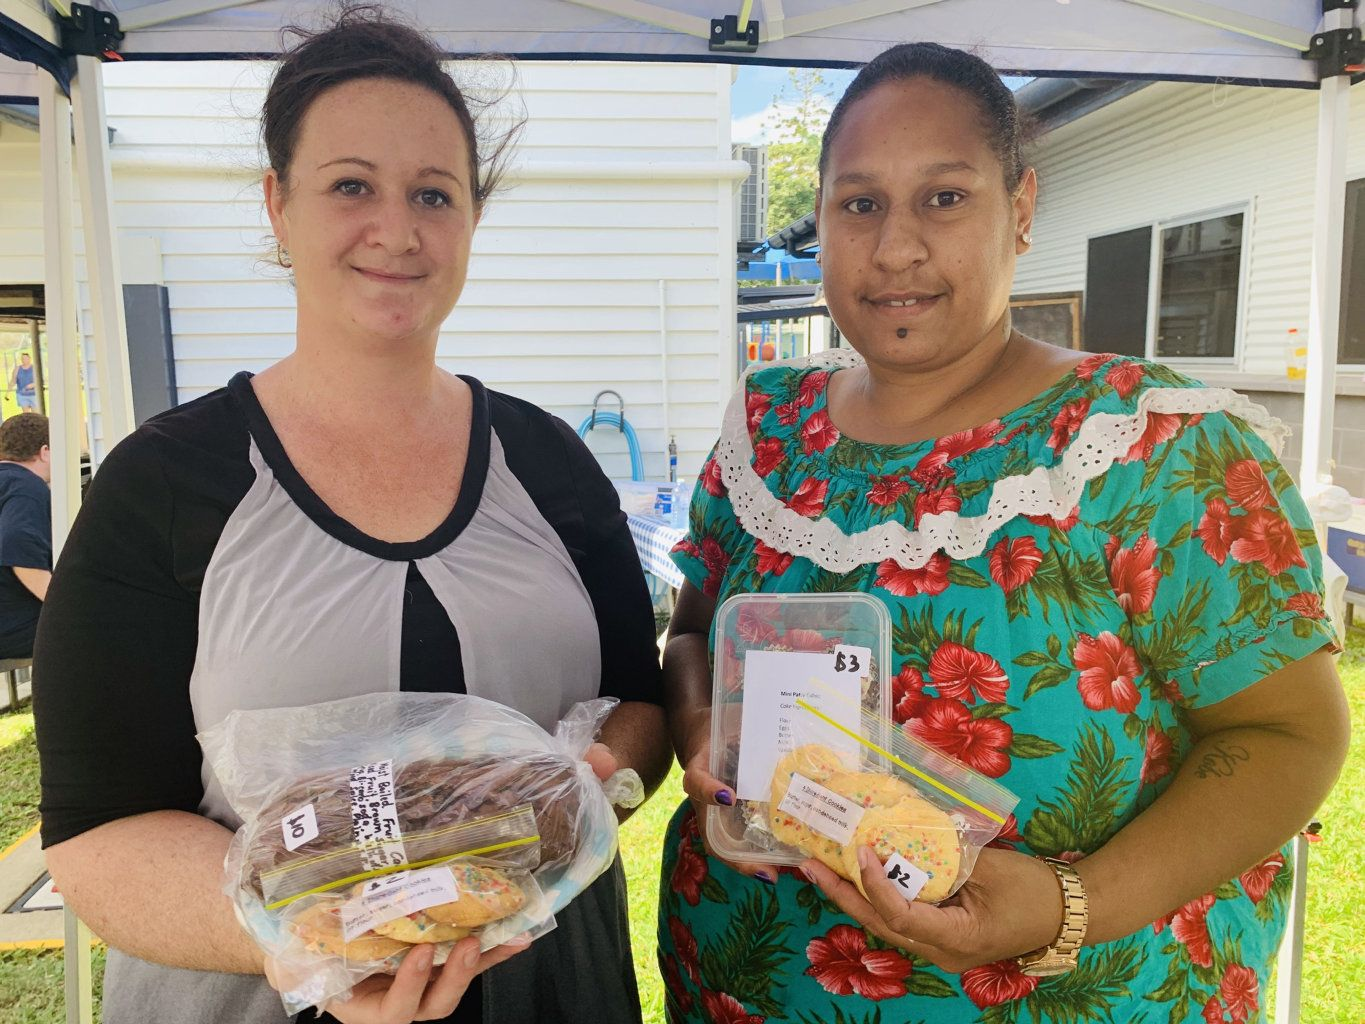 Marila Aitken and Kristy Tante are running the bake sale at the Dundula State School polling booth for Election Day 2019.